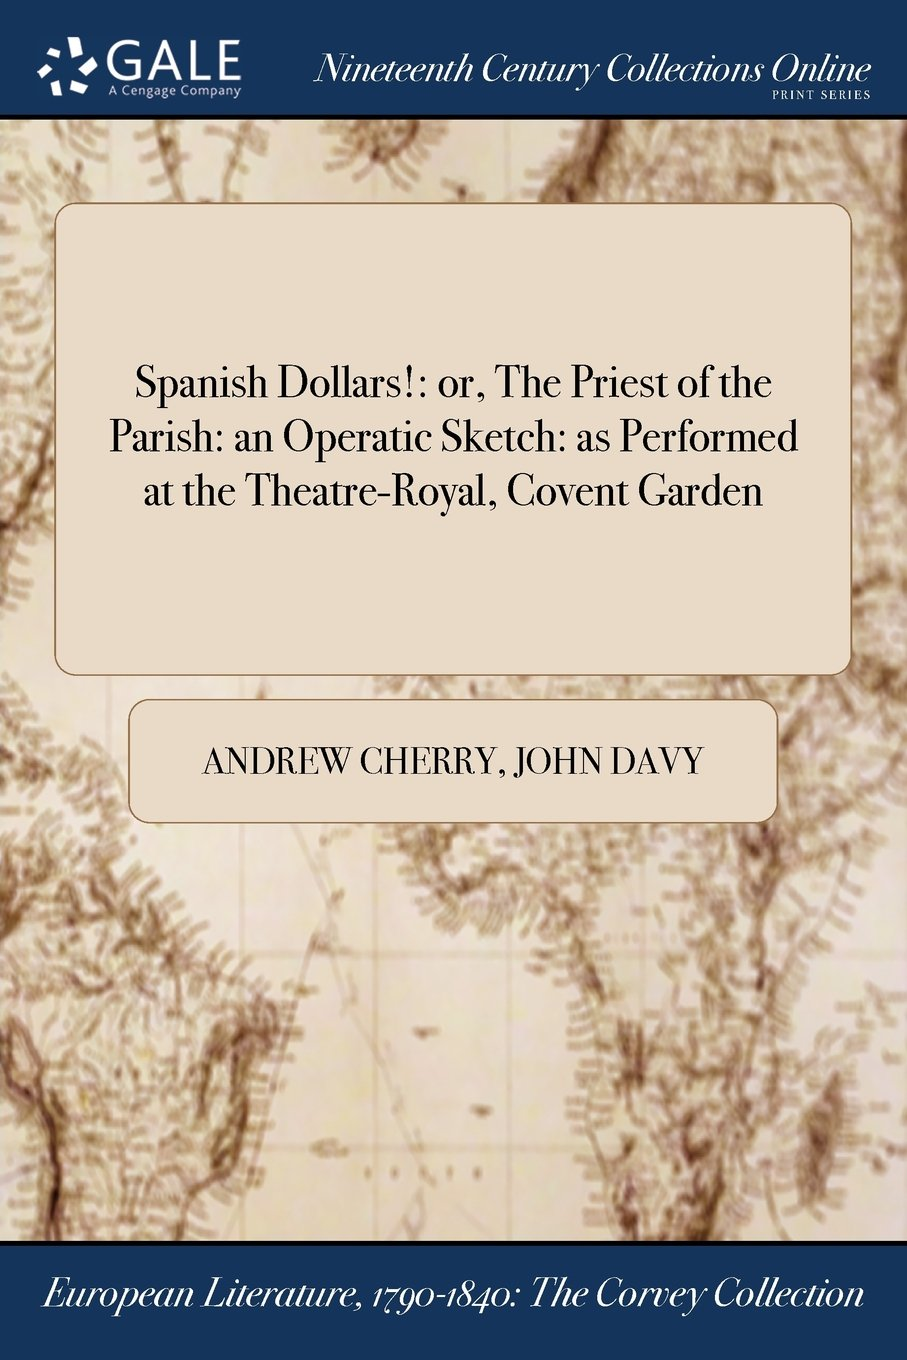 Amazon Com Spanish Dollars Or The Priest Of The Parish An Operatic Sketch As Performed At The Theatre Royal Covent Garden 9781375067126 Andrew